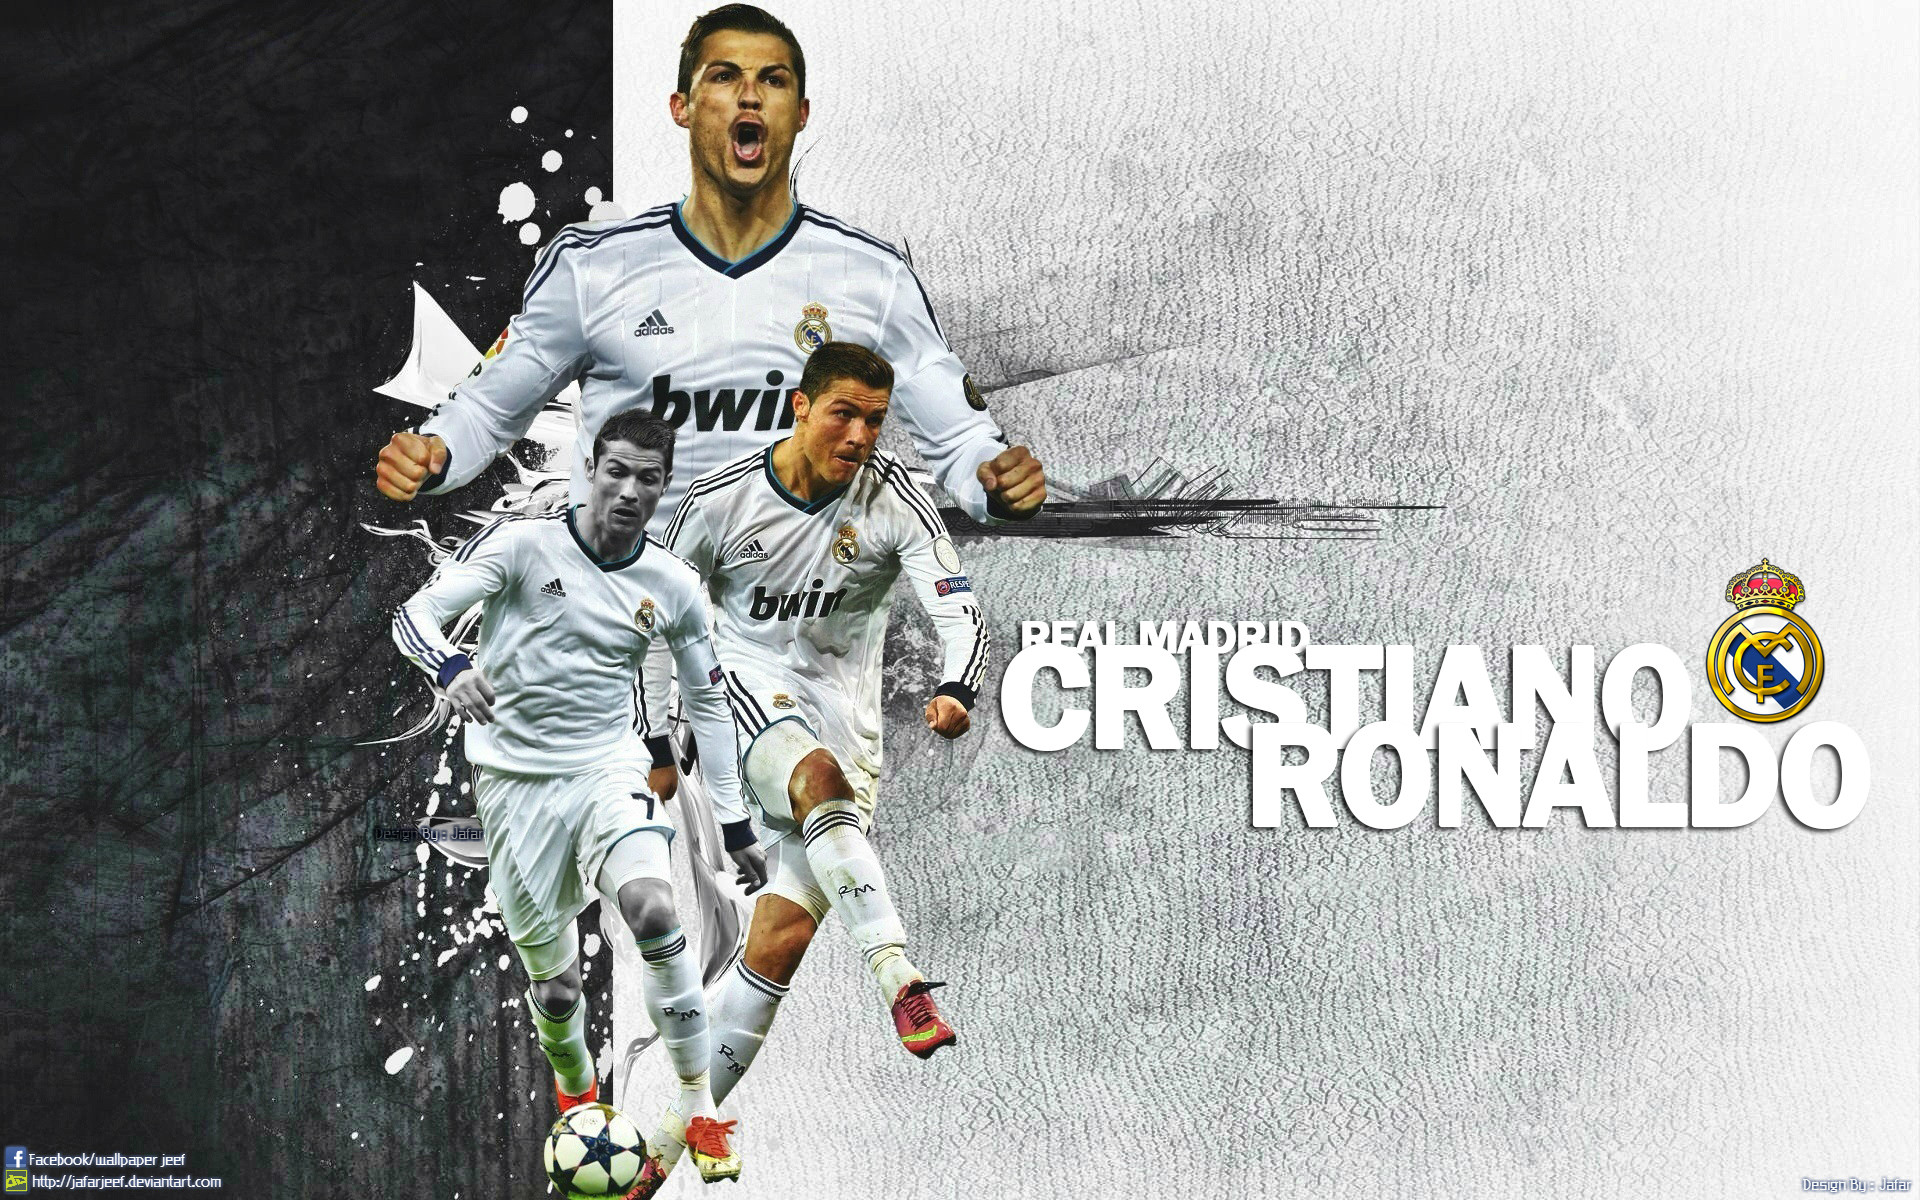 Cristiano Ronaldo Wallpapers  in HD  Soccer  Football 1920x1200